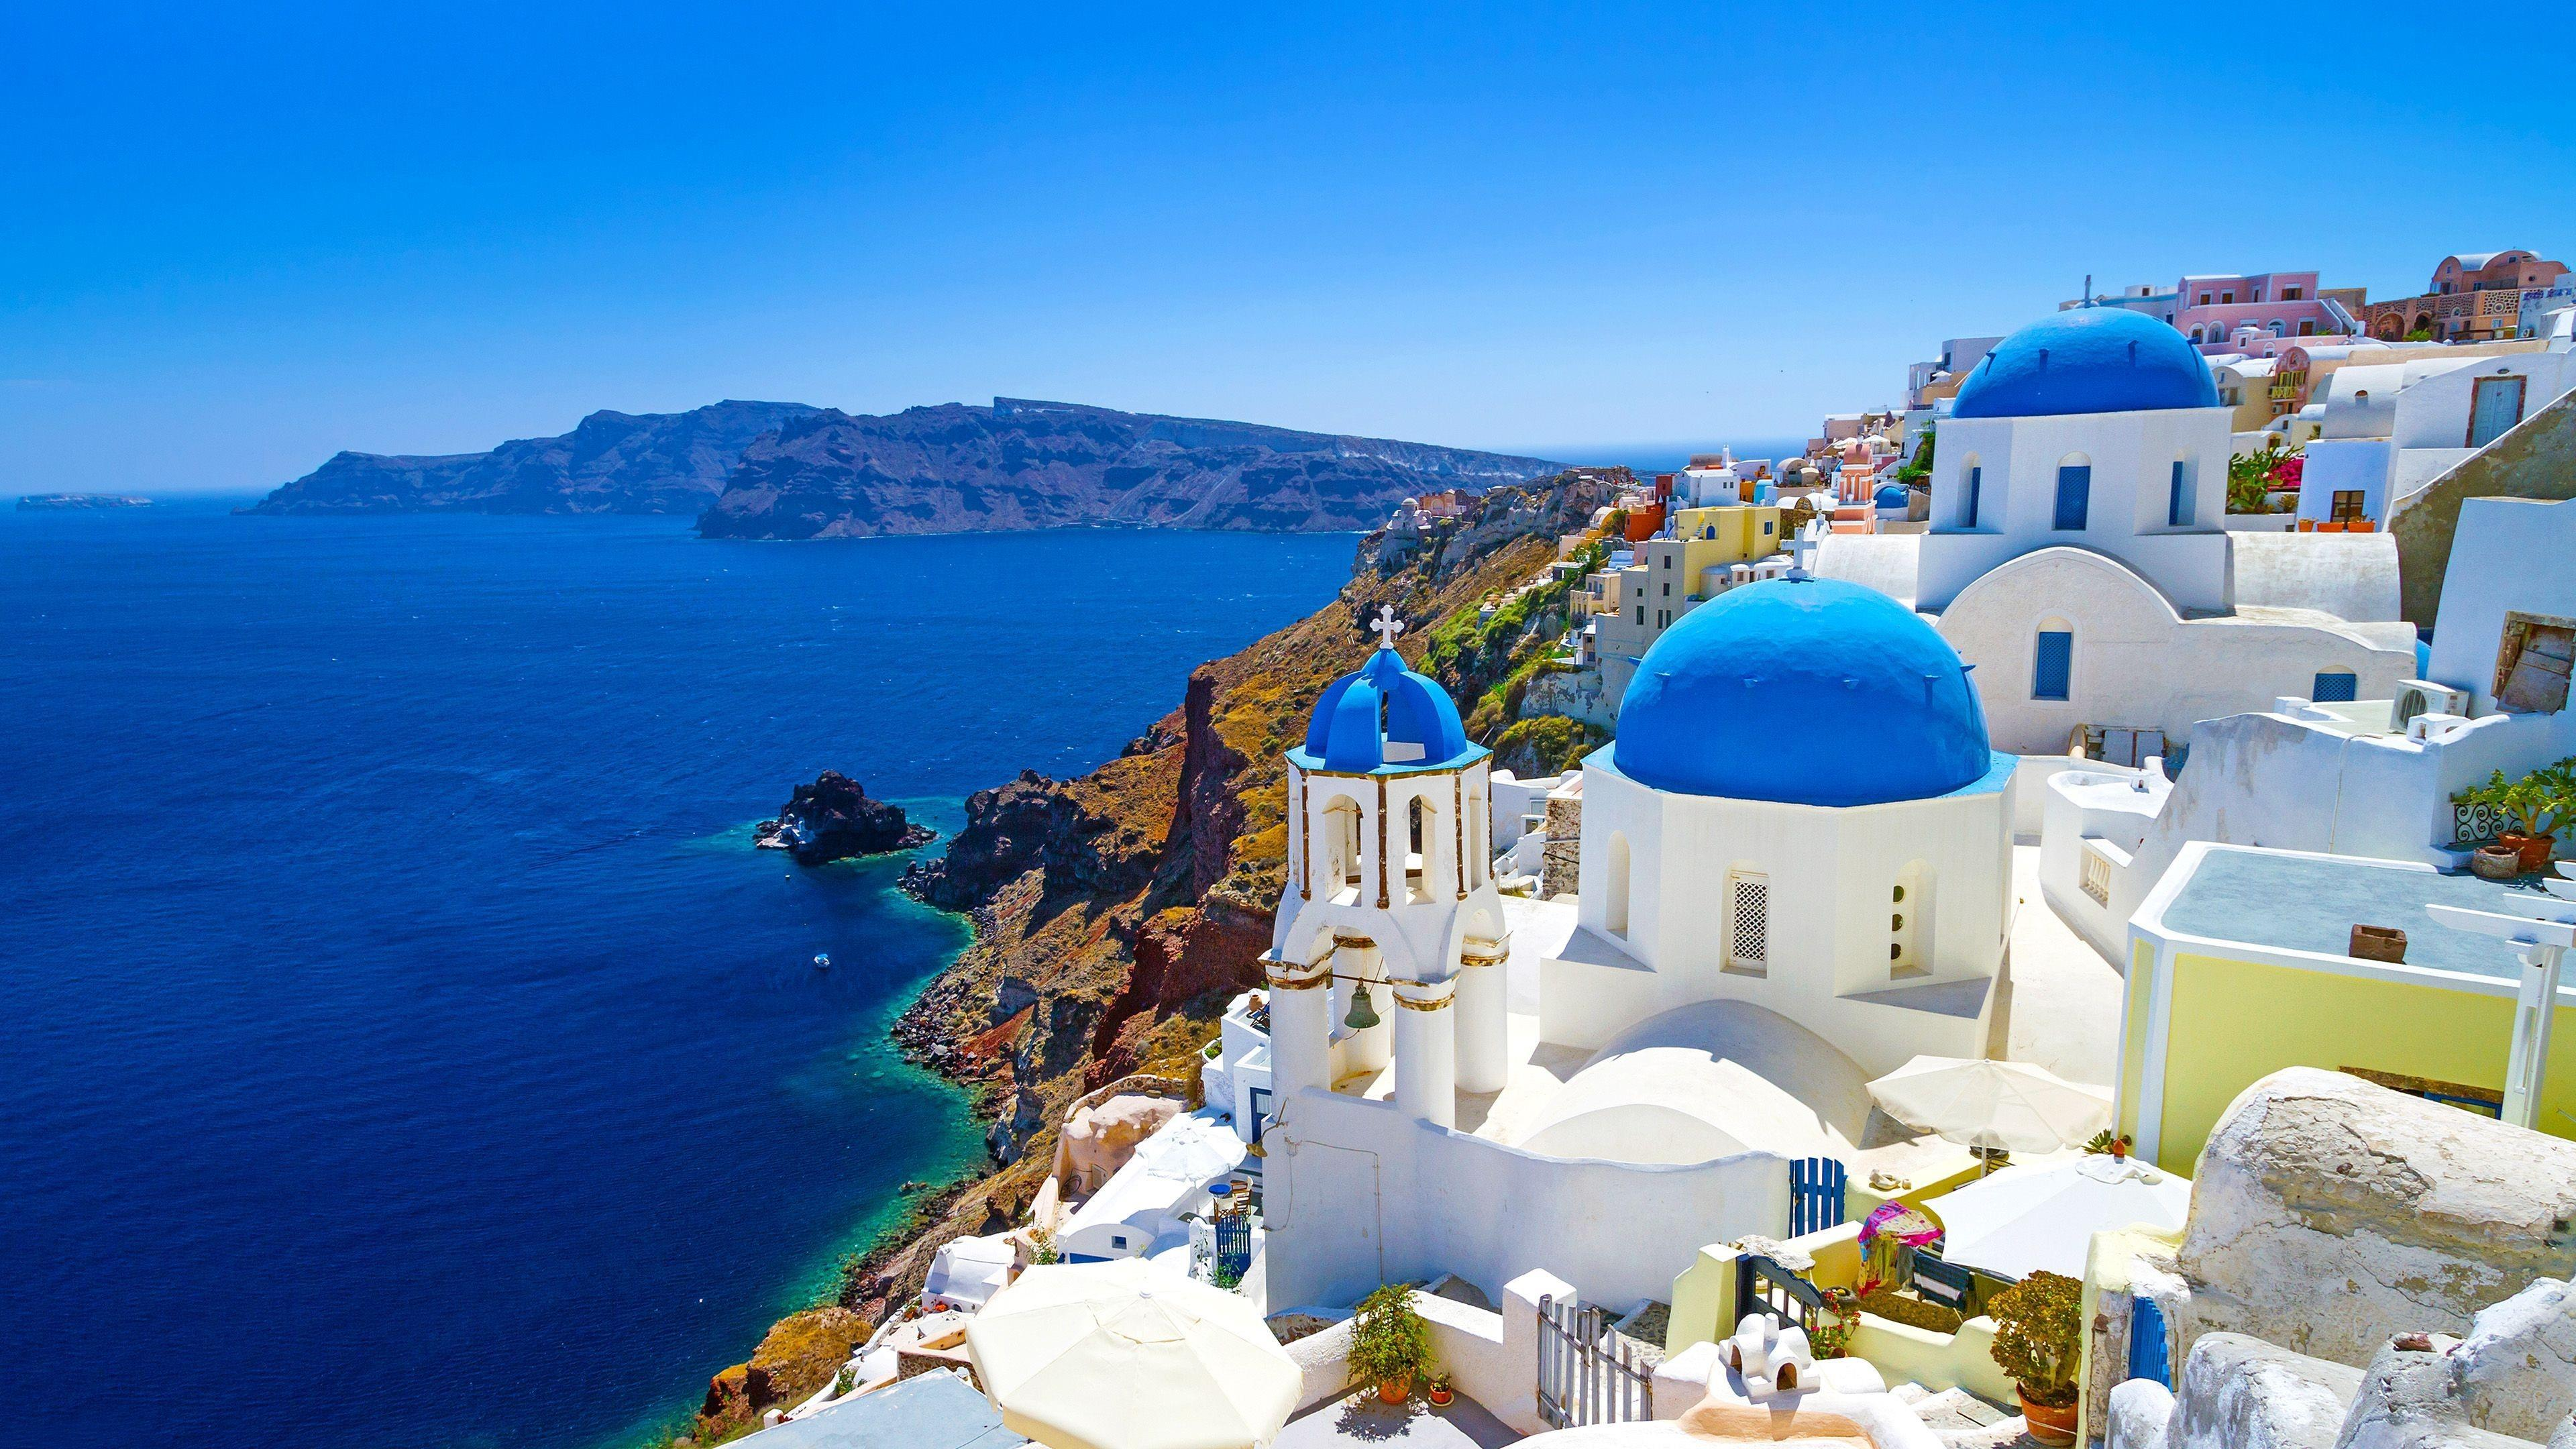 Santorini Wallpapers   Wallperiocom 3840x2160